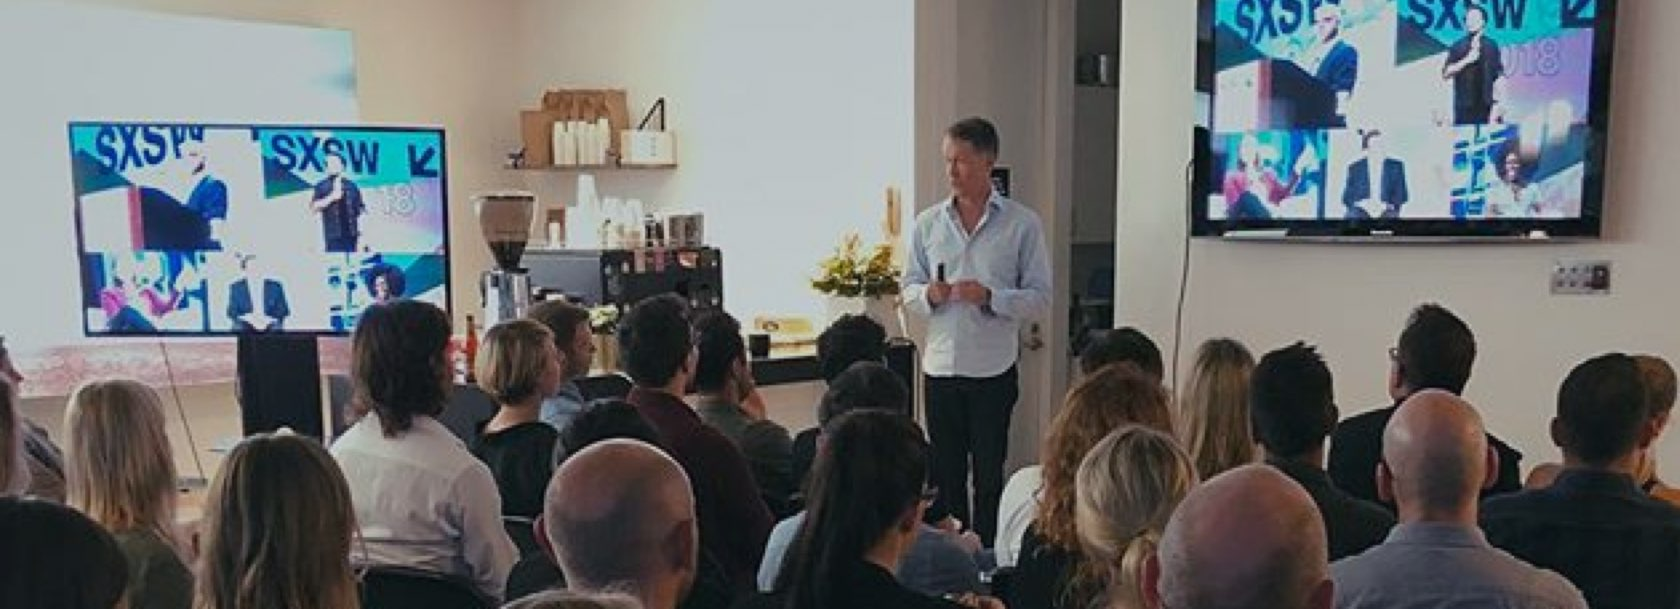 Creative Partner Douglas Nicol presenting to a group of people